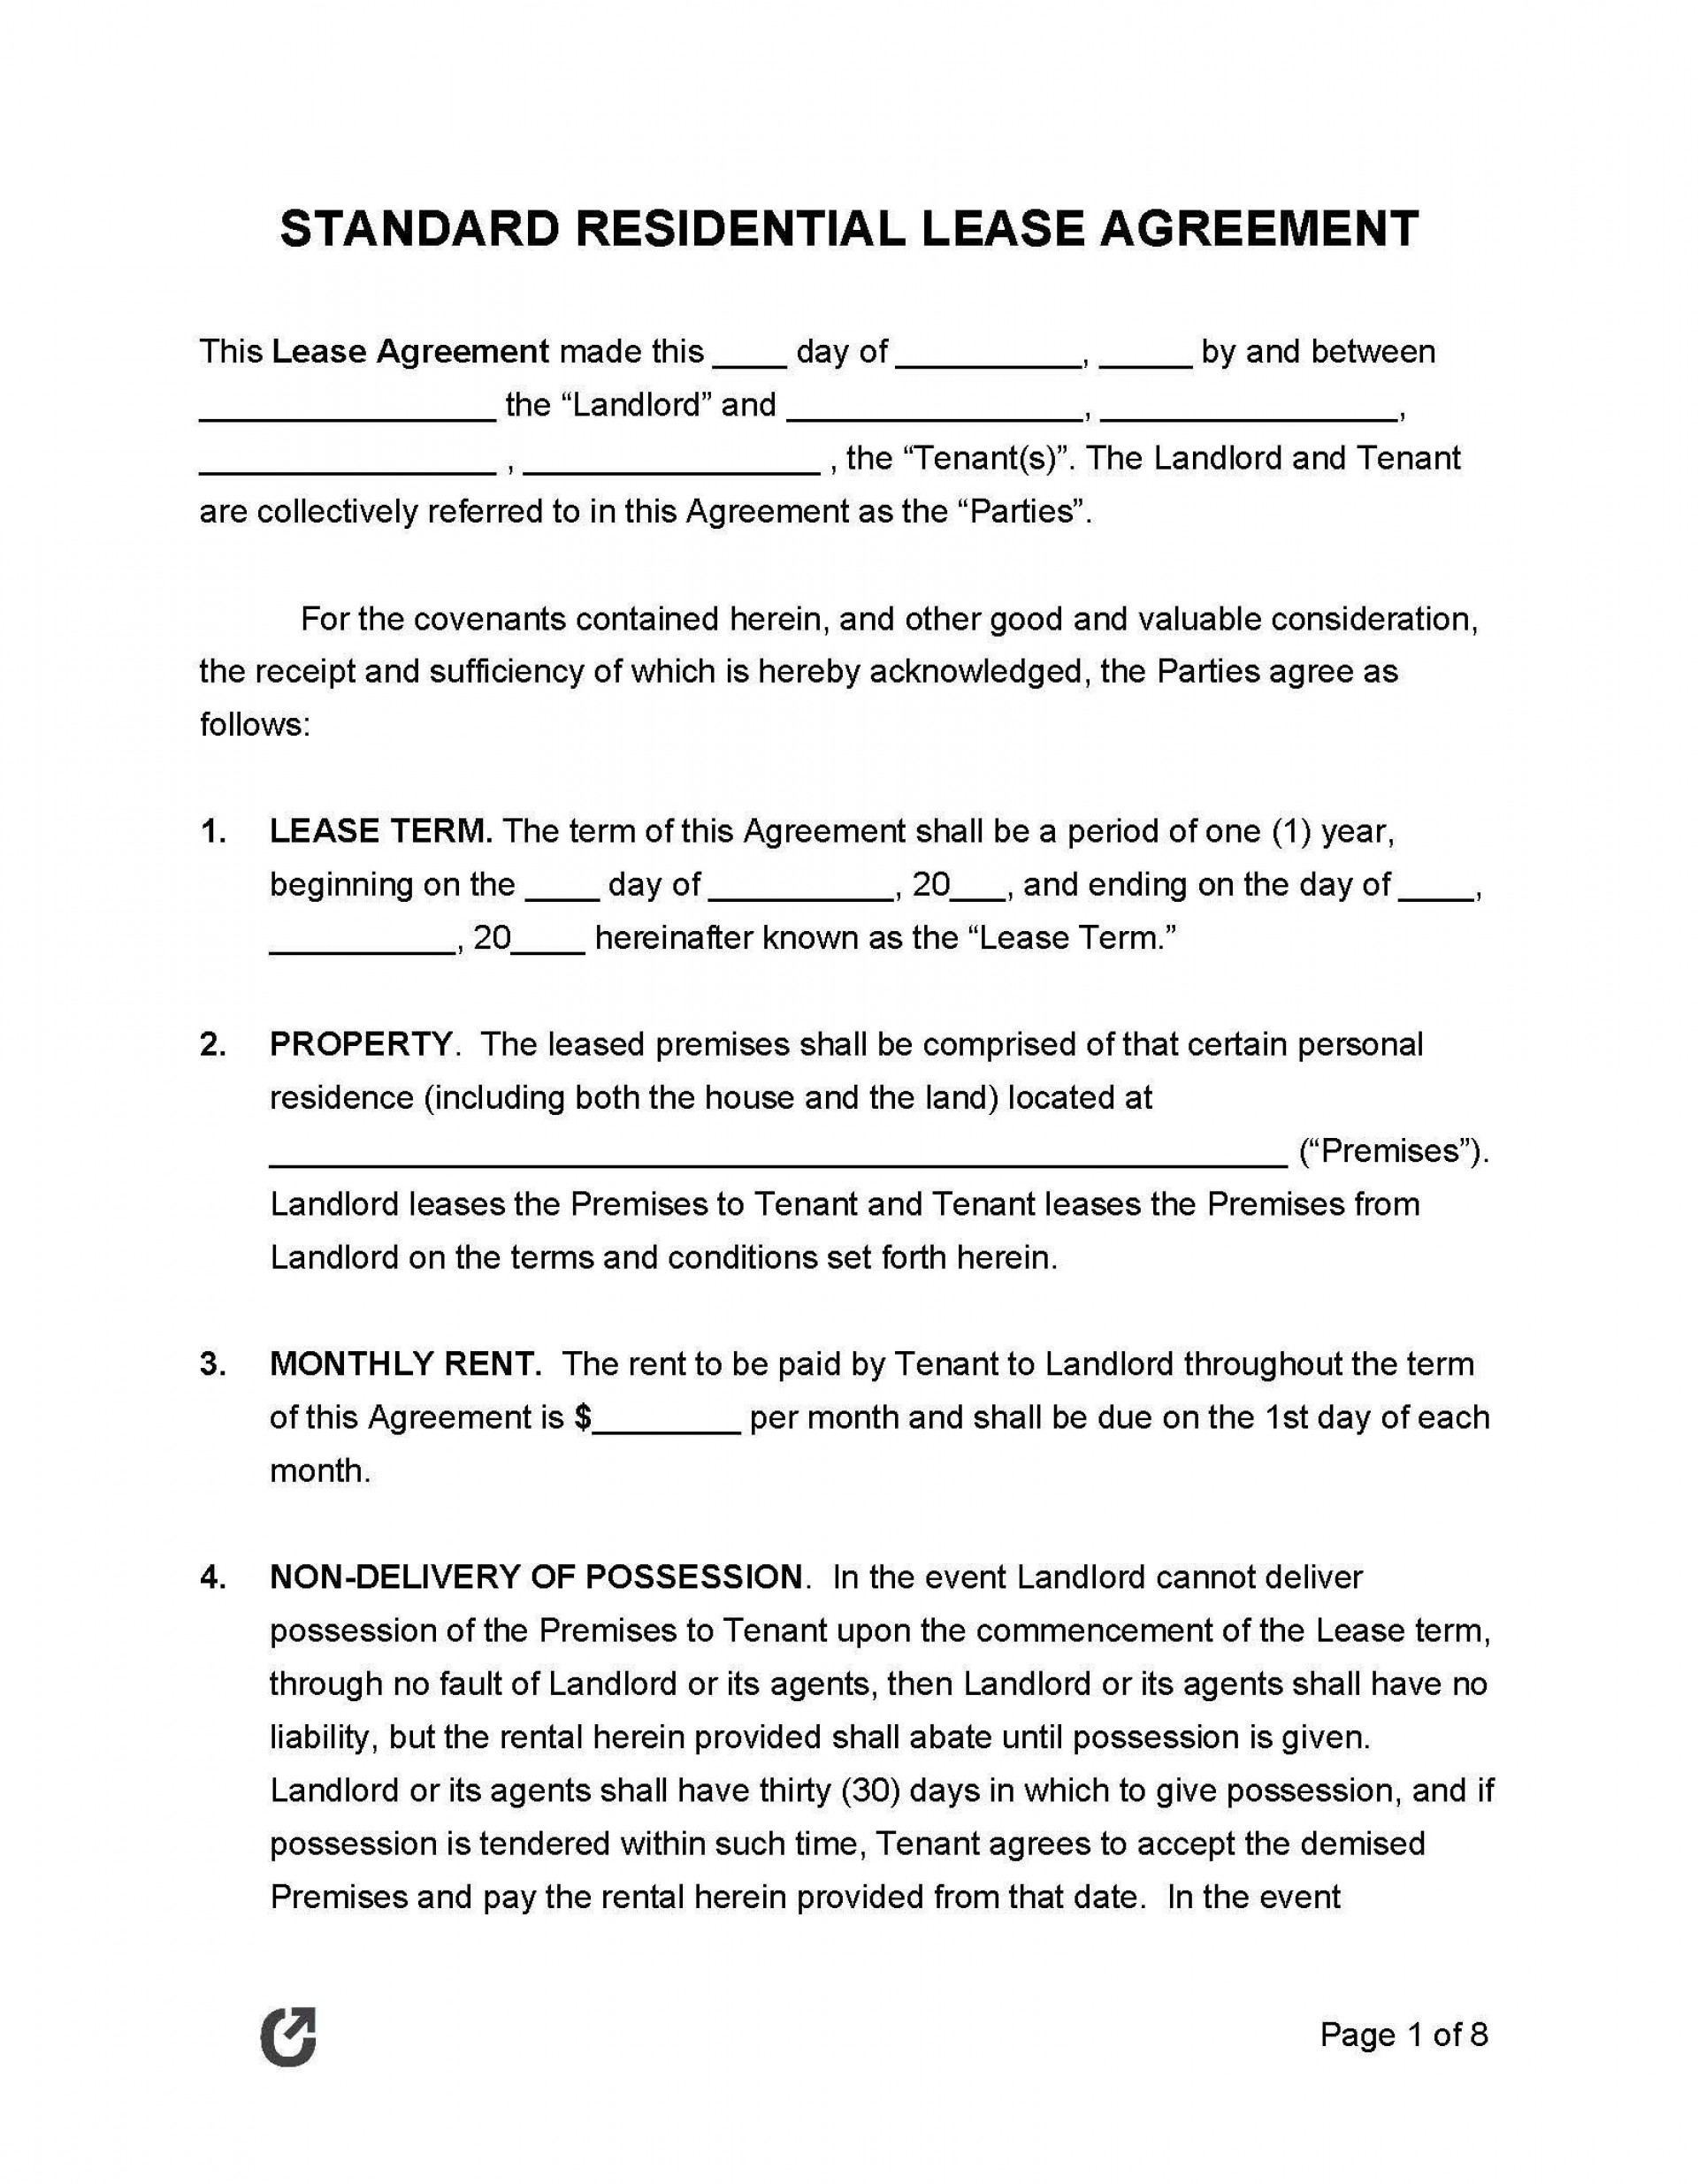 000 Surprising Rent Lease Agreement Format Highest Quality  Shop Rental In English Tamil Simple Form1920